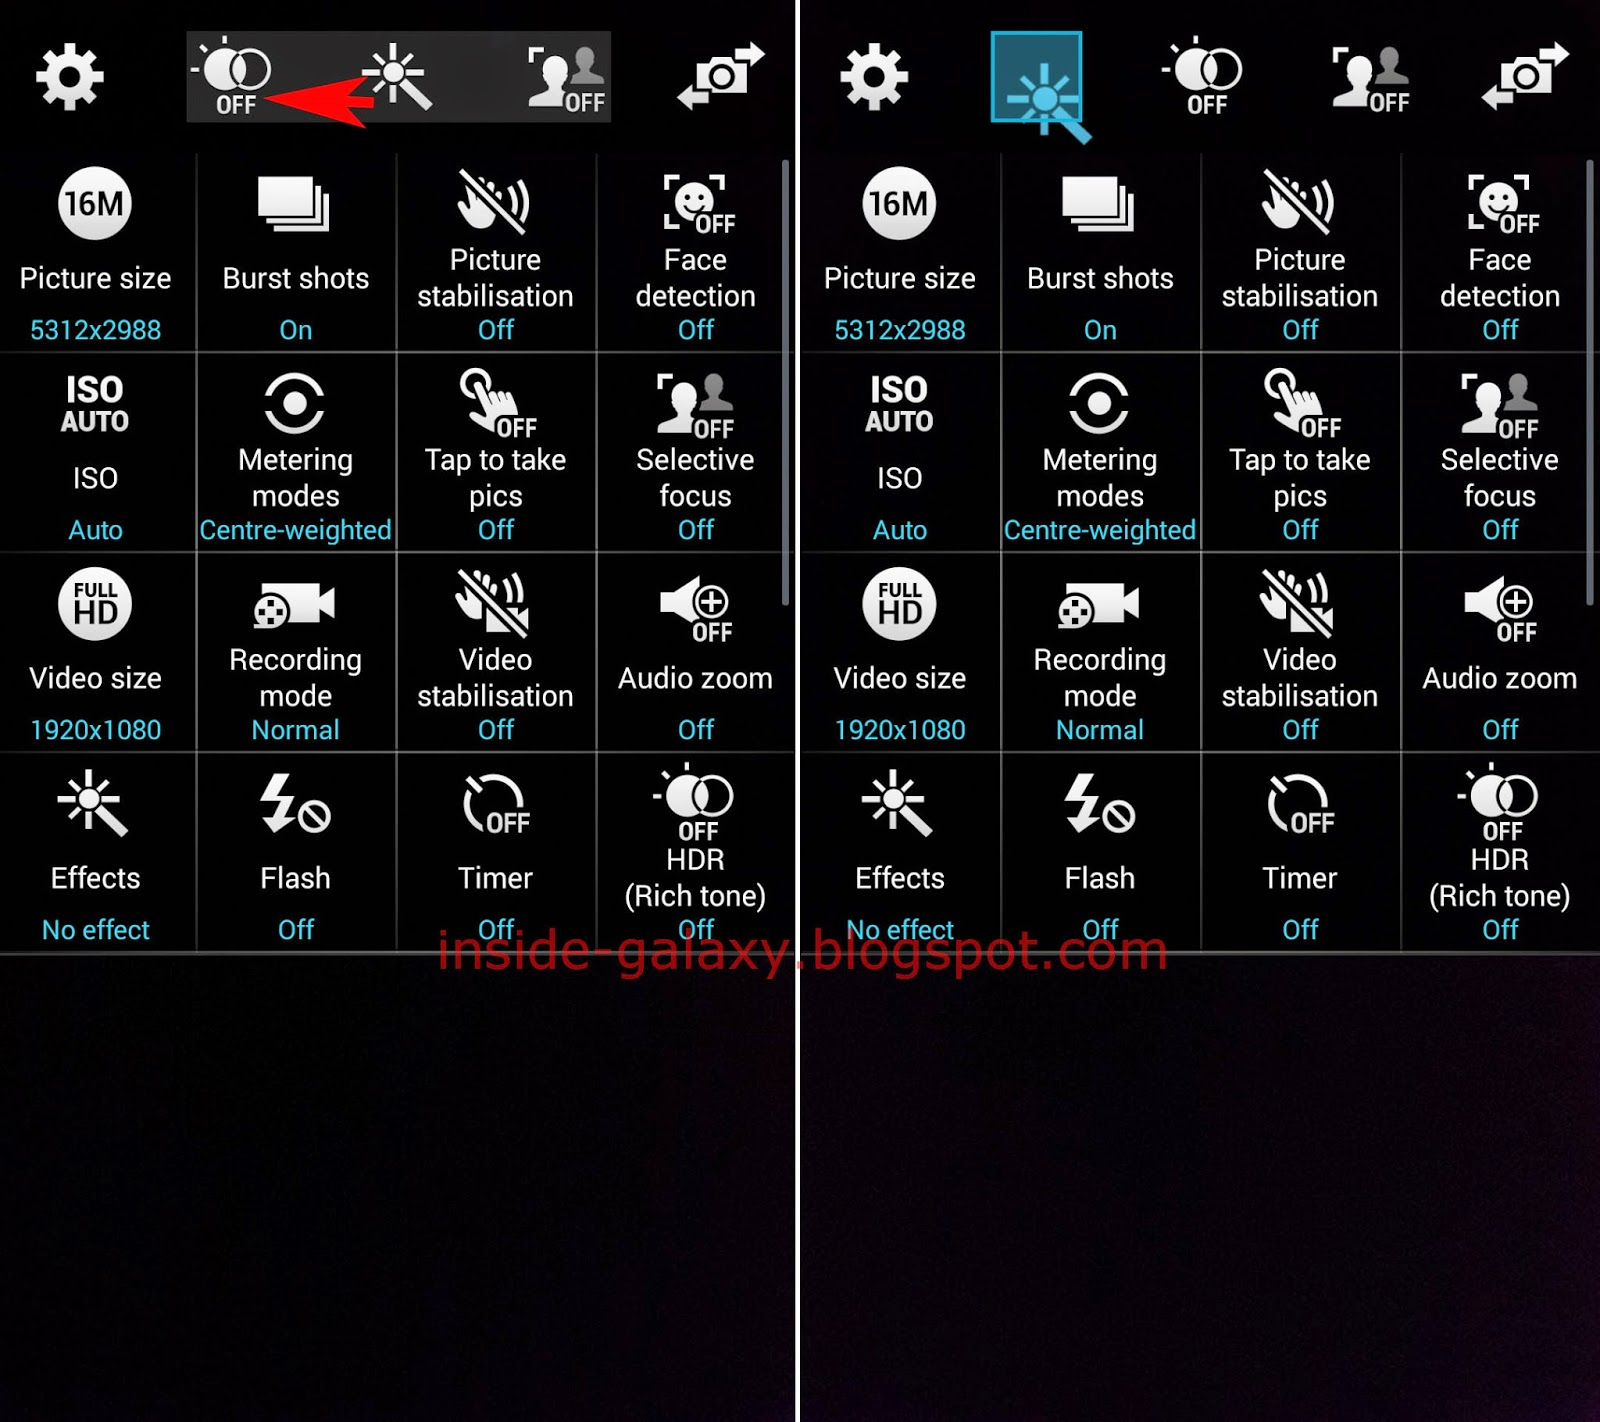 Samsung Galaxy S5: How to Organize Quick Shortcuts in the